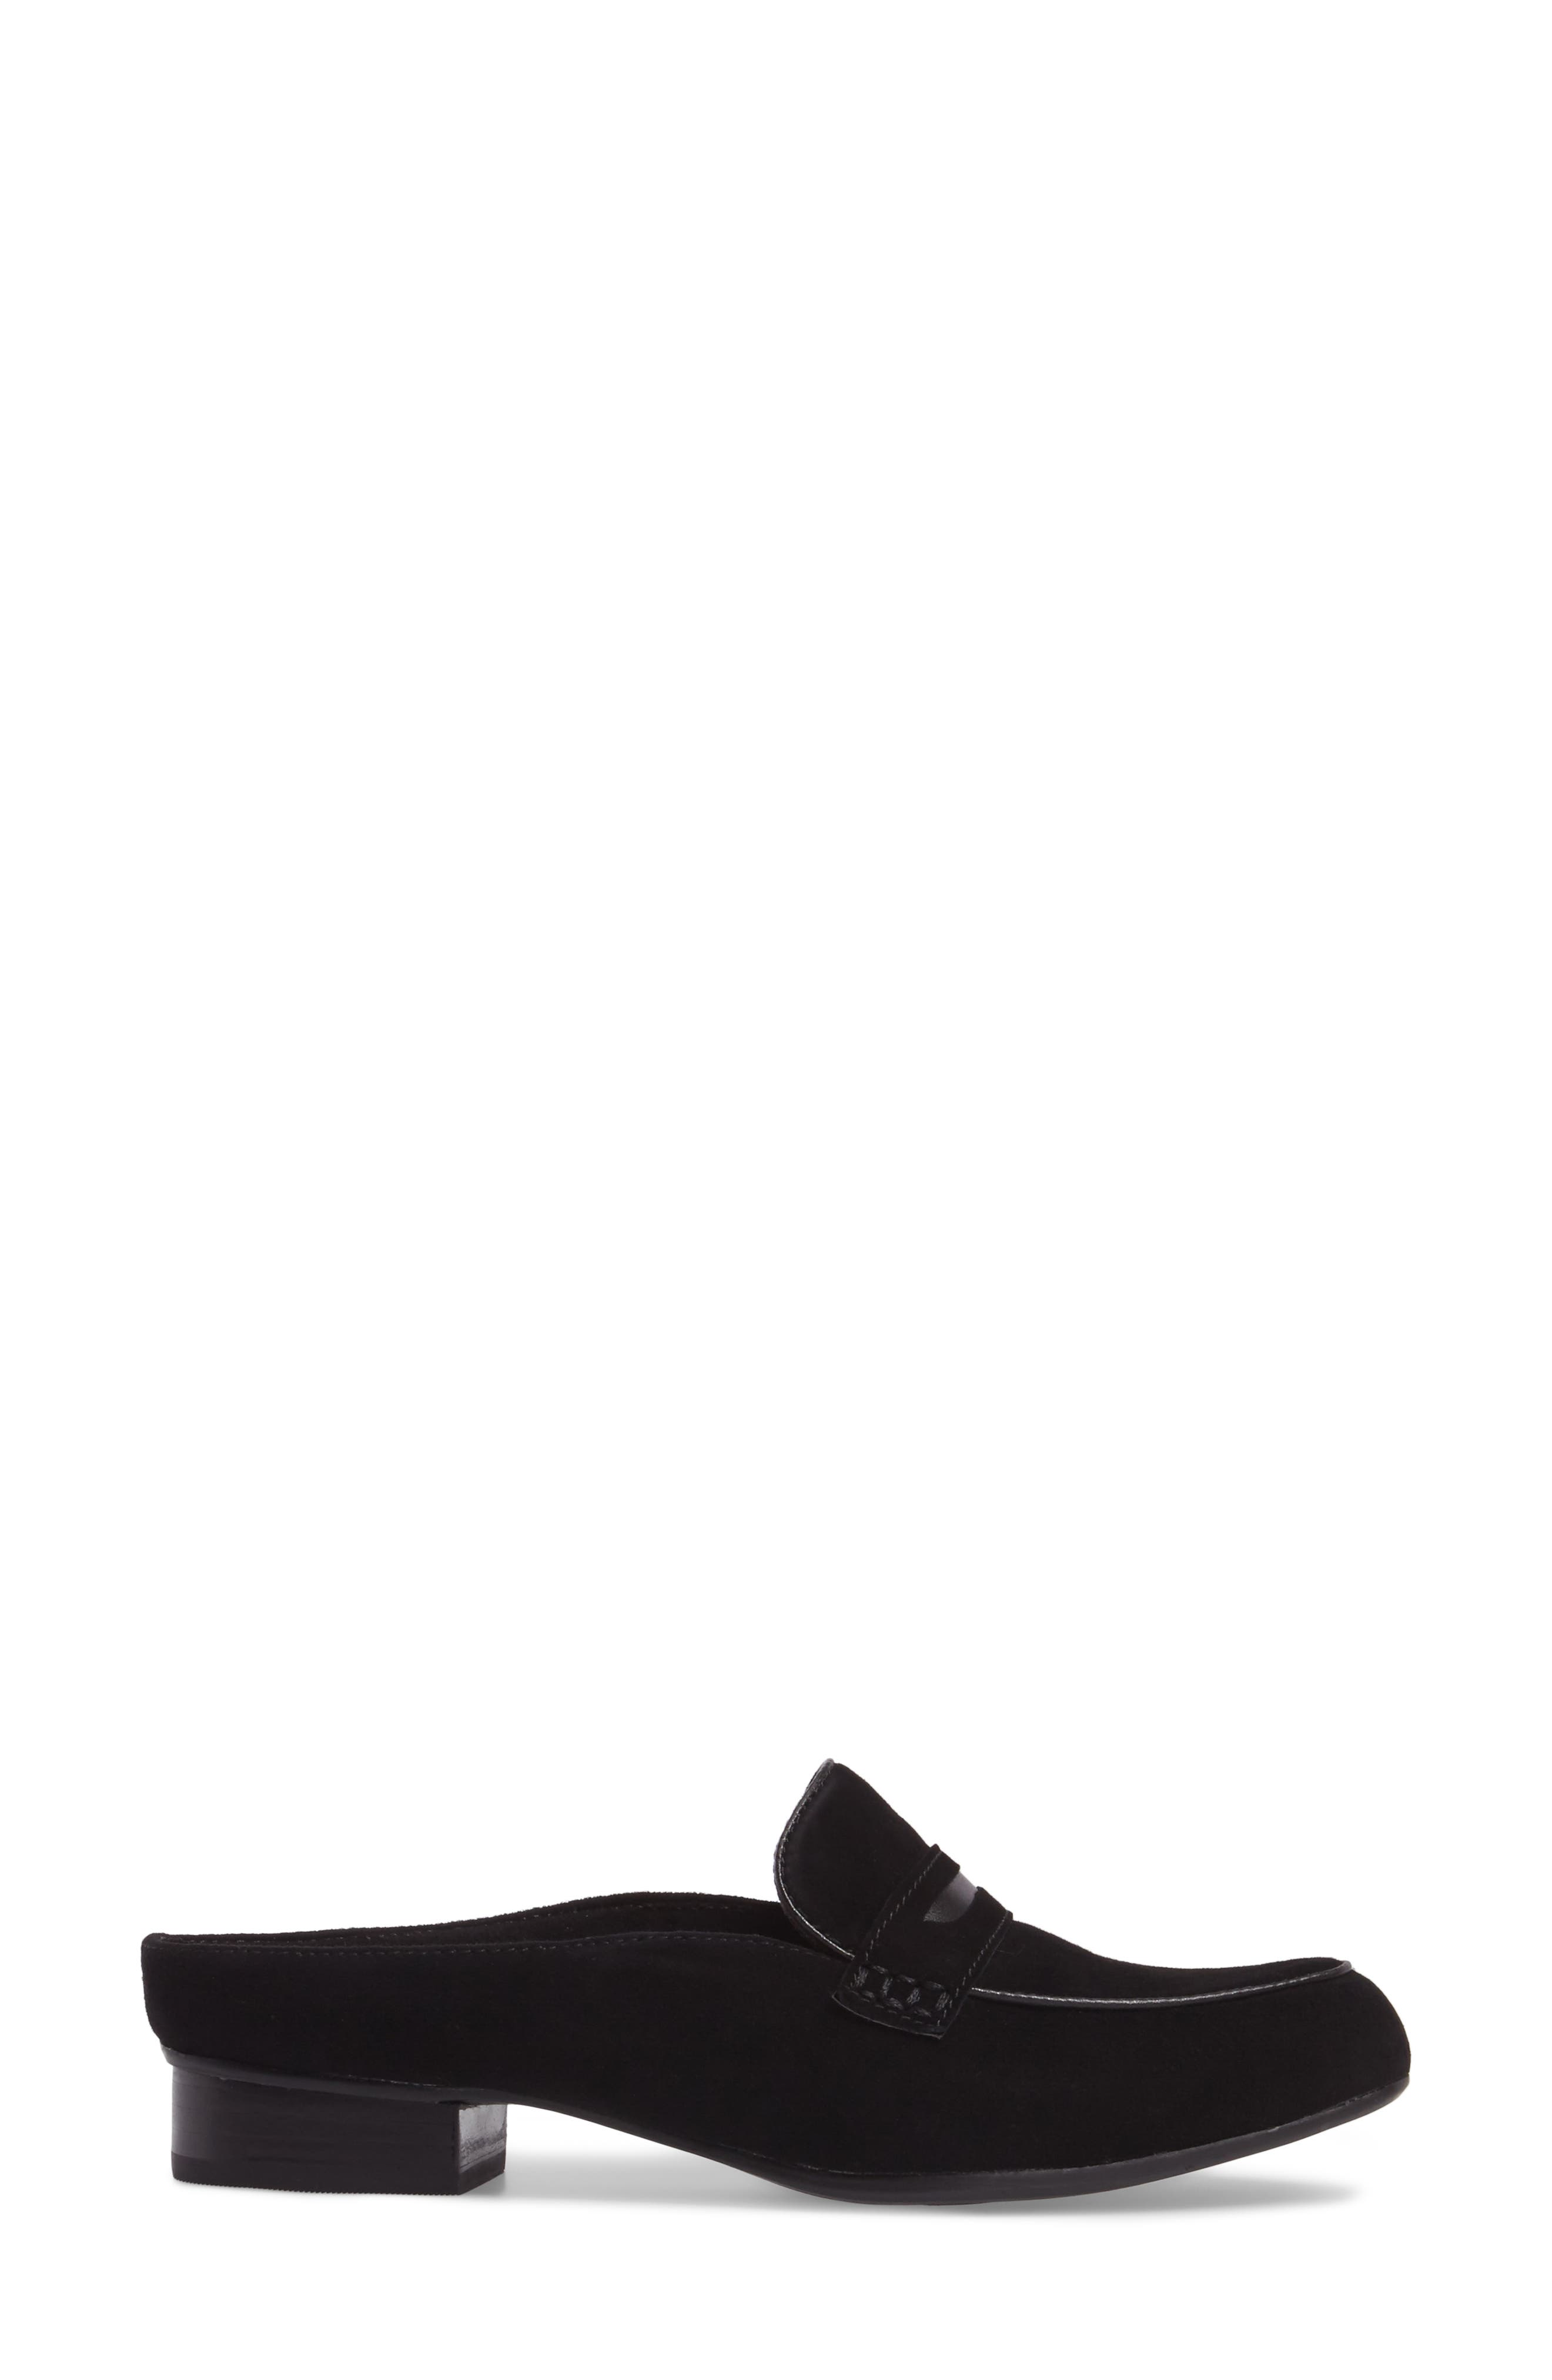 Keesha Donna Loafer Mule,                             Alternate thumbnail 3, color,                             007